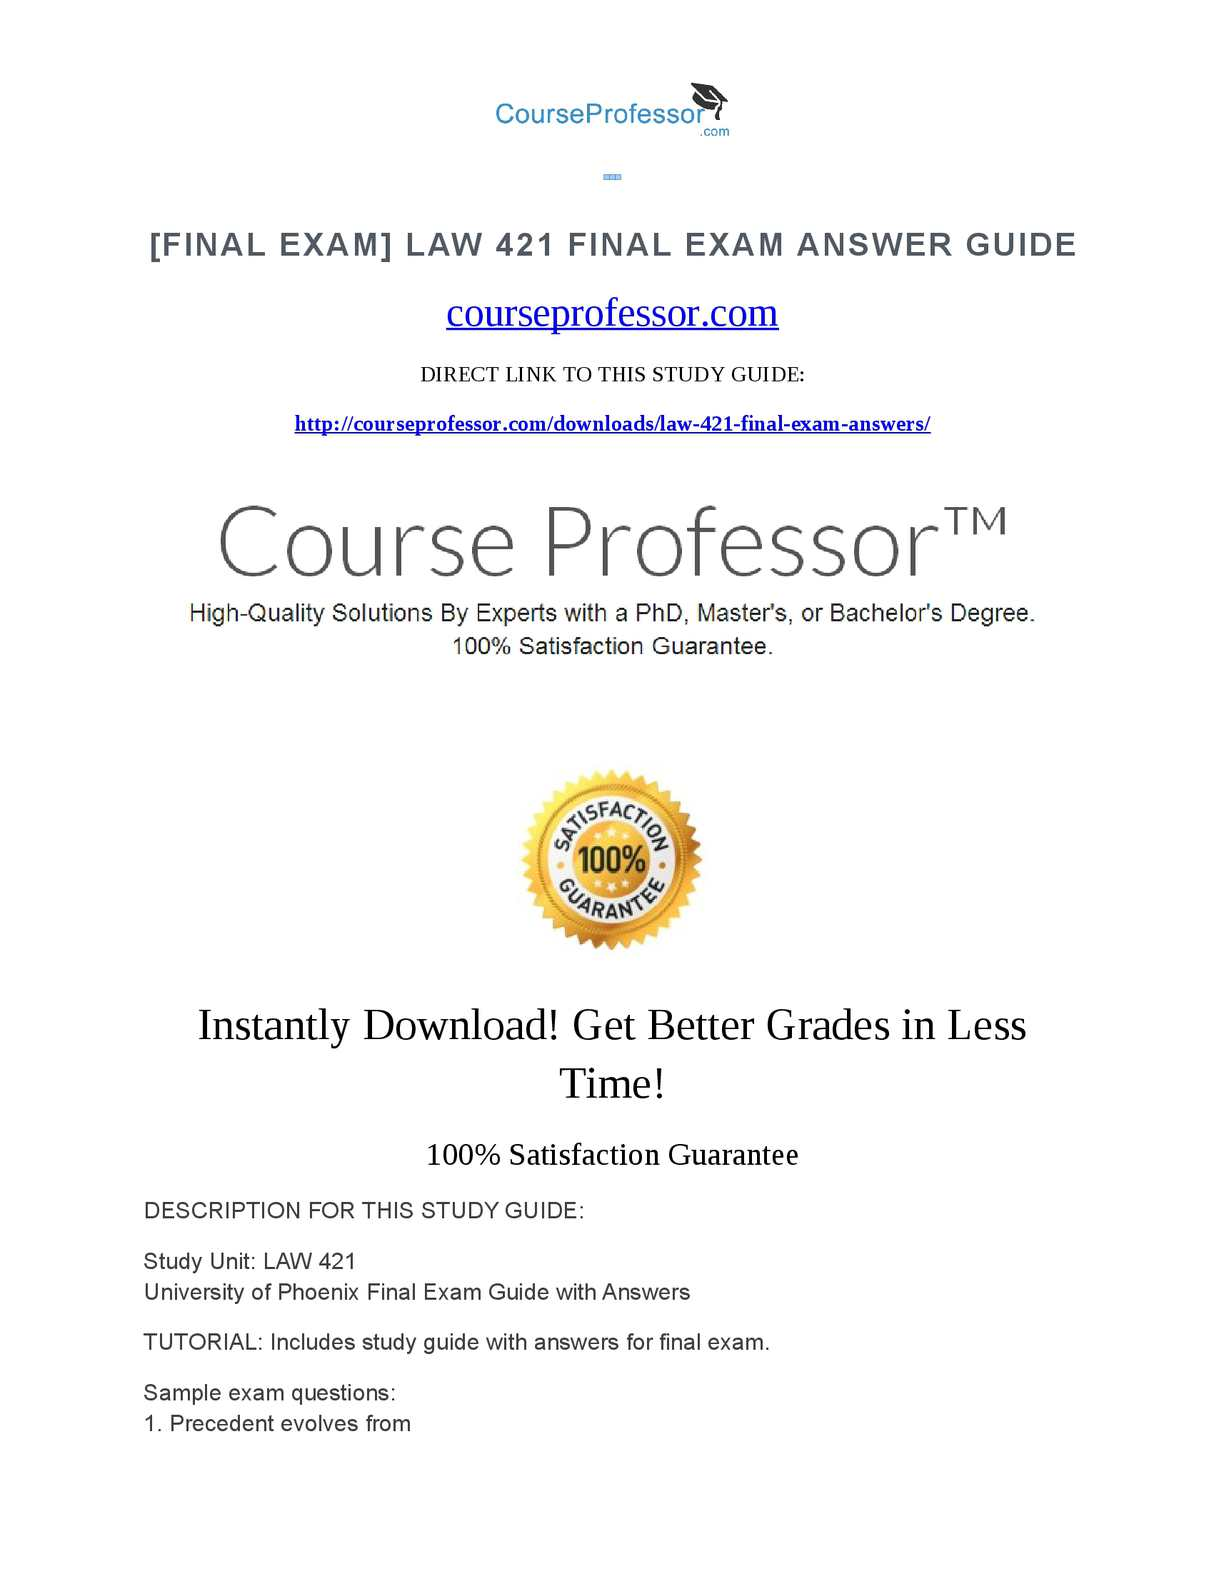 universtiy of phoenix business law 531 final exam Exam of law 531 for university of phoenix this is an a rated tutorial and latest final exam available uop business law 531 final exam question answers by , issuu is a digital publishing.